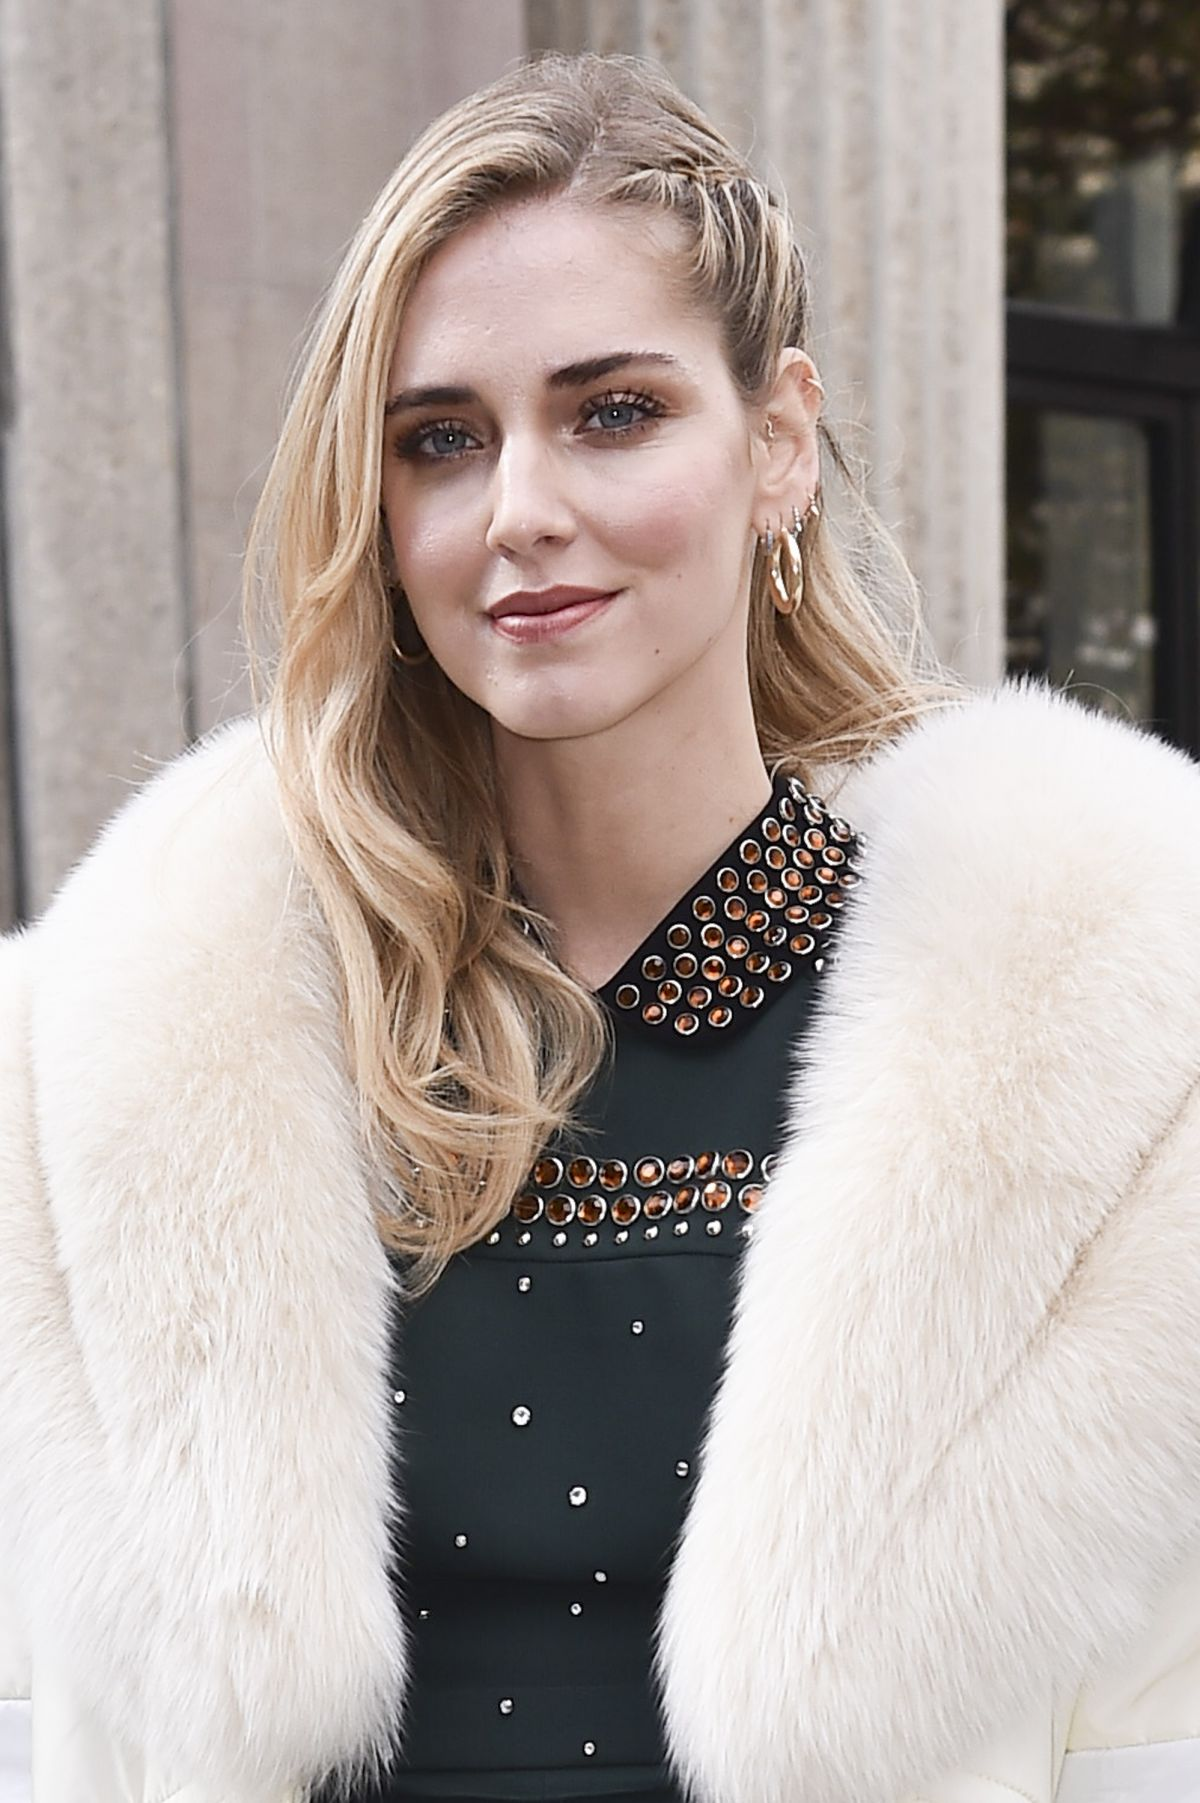 chiara-ferragni-at-miu-miu-fashion-show-in-paris-10-03-2017-9